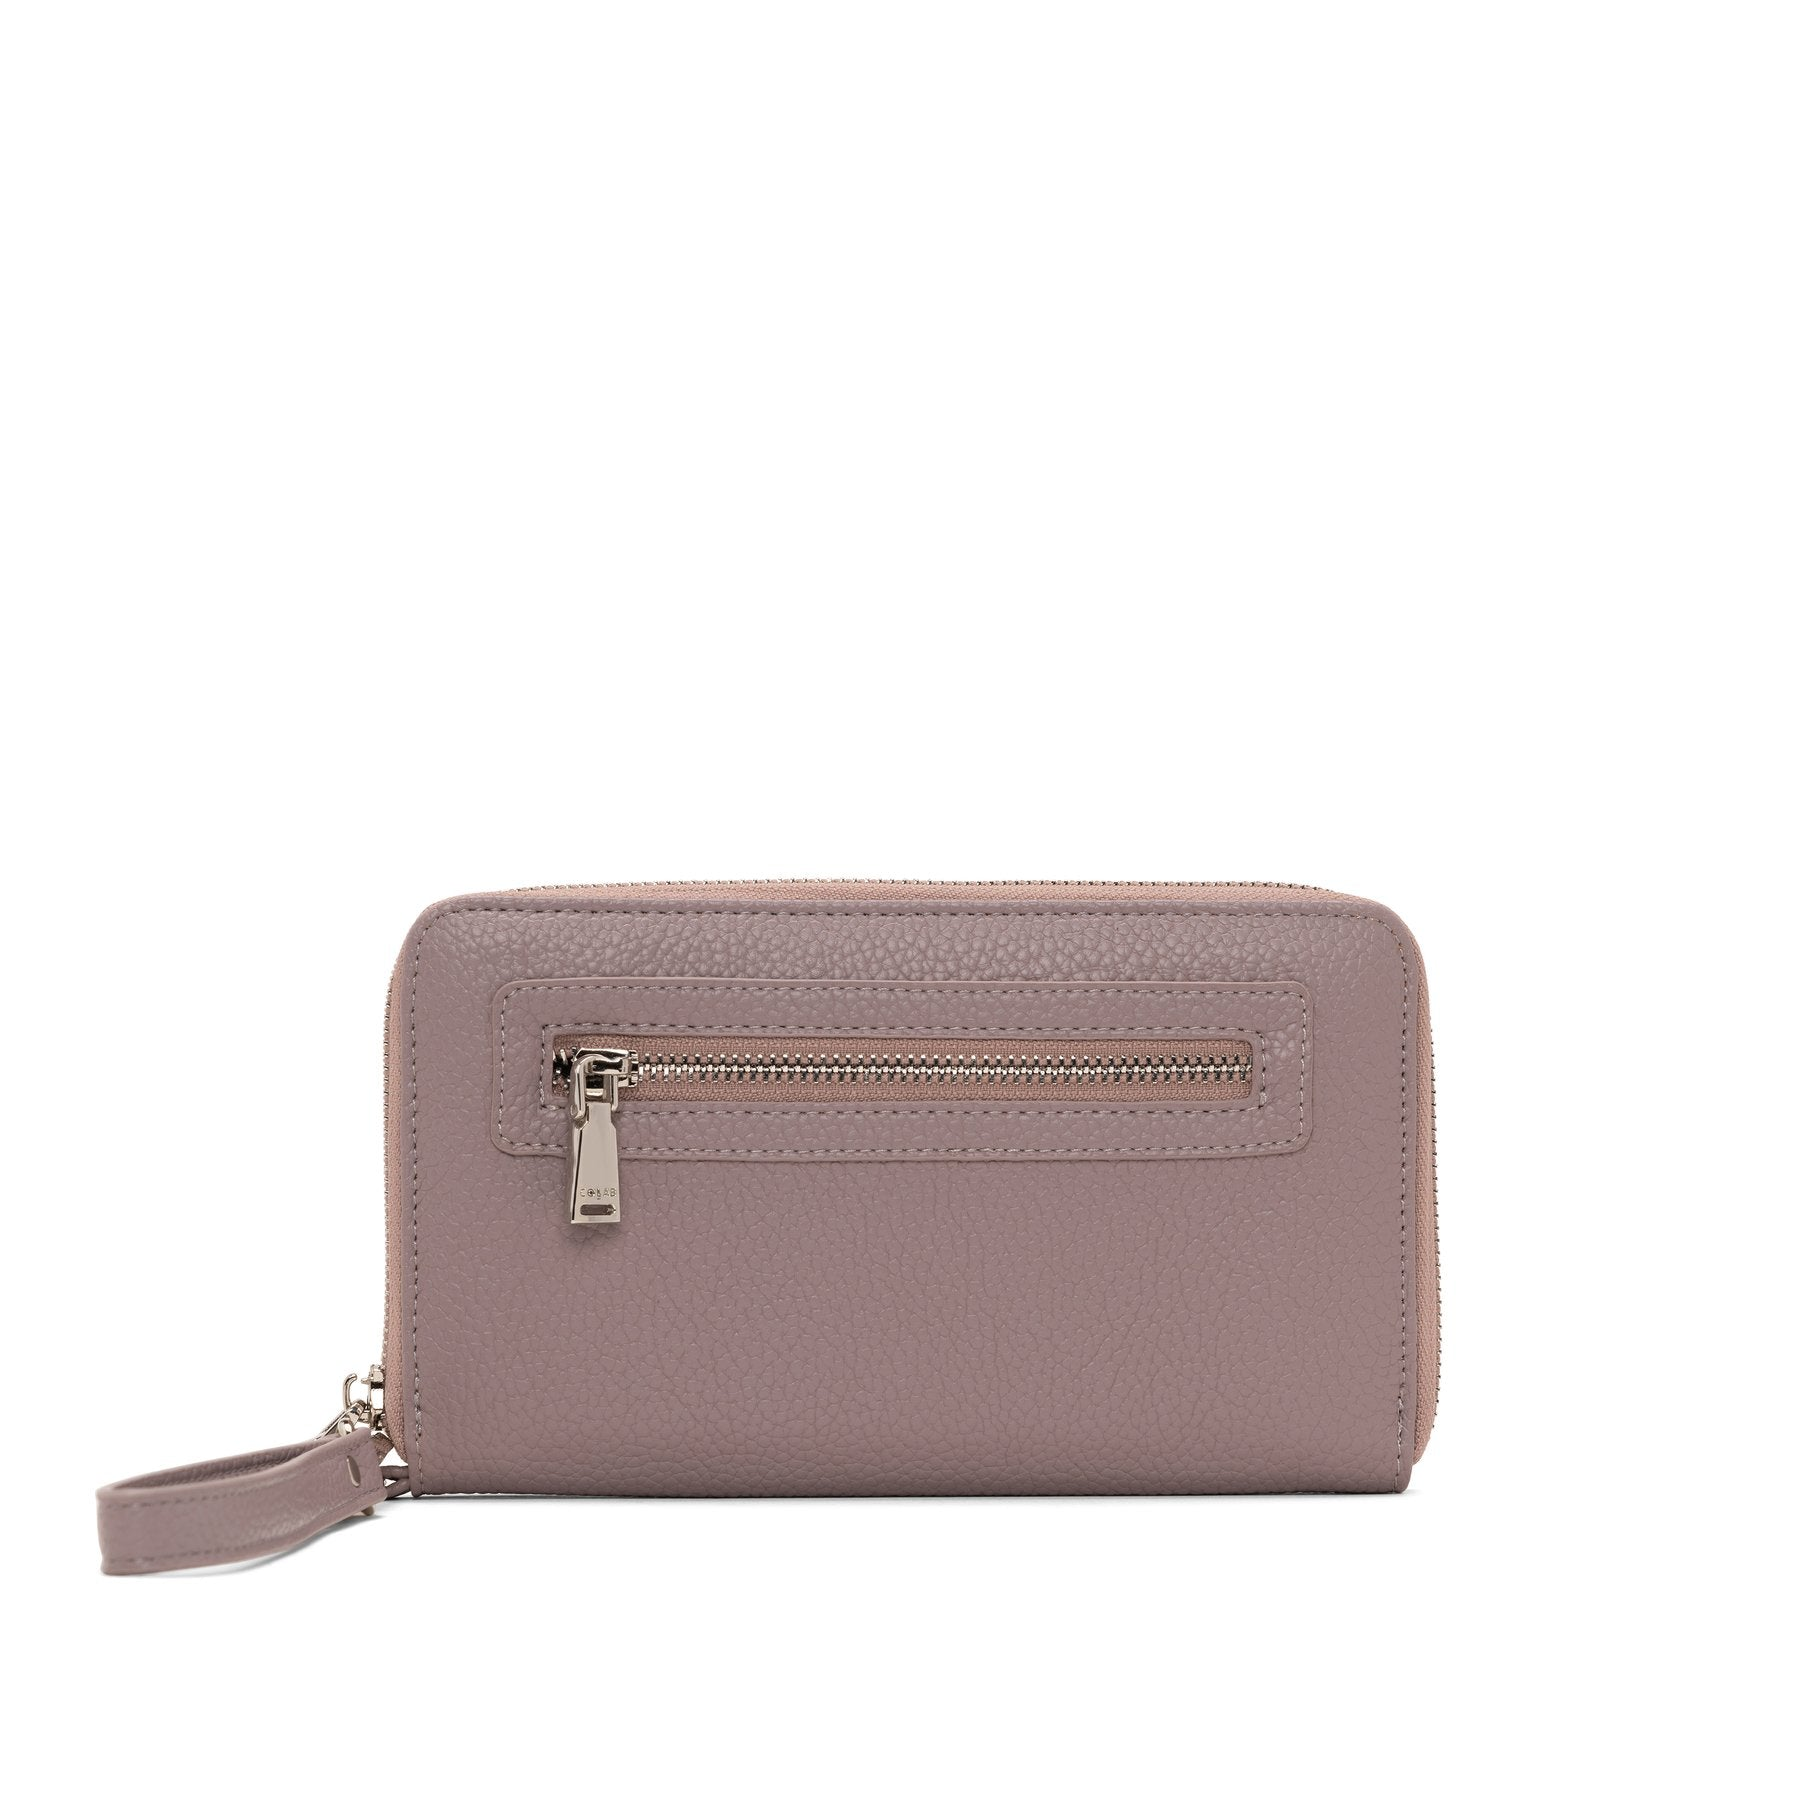 CATHY - WRISTLET / DUSTY MAUVE